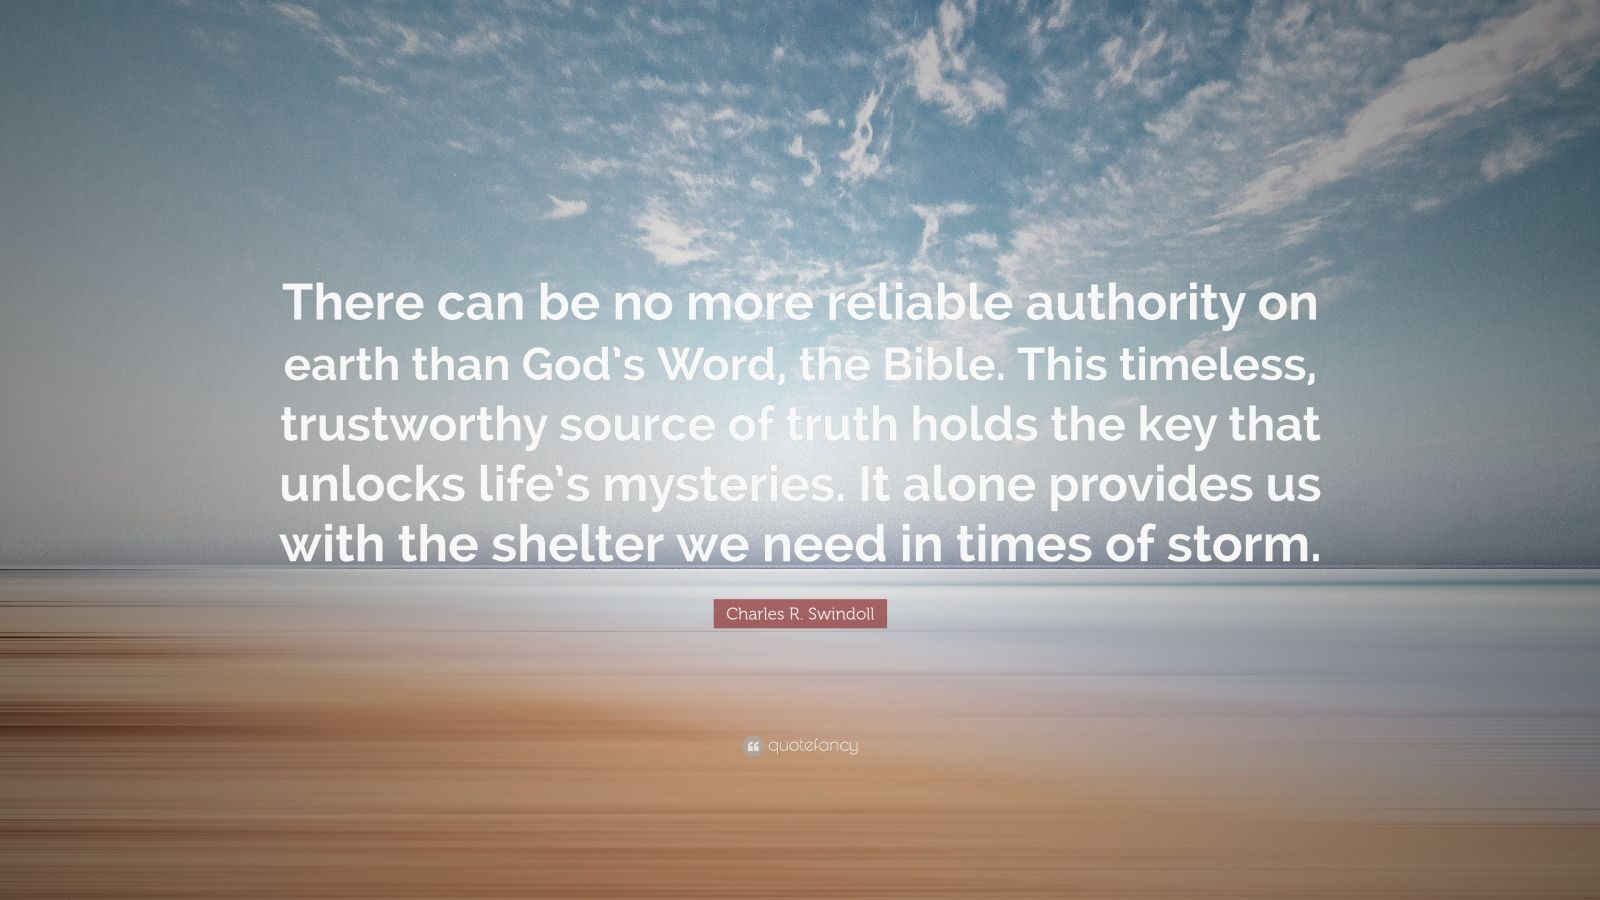 """Charles R. Swindoll Quote: """"There can be no more reliable authority on earth than God's Word, the Bible. This timeless, trustworthy source of truth holds the key that unlocks life's mysteries. It alone provides us with the shelter we need in times of storm."""""""